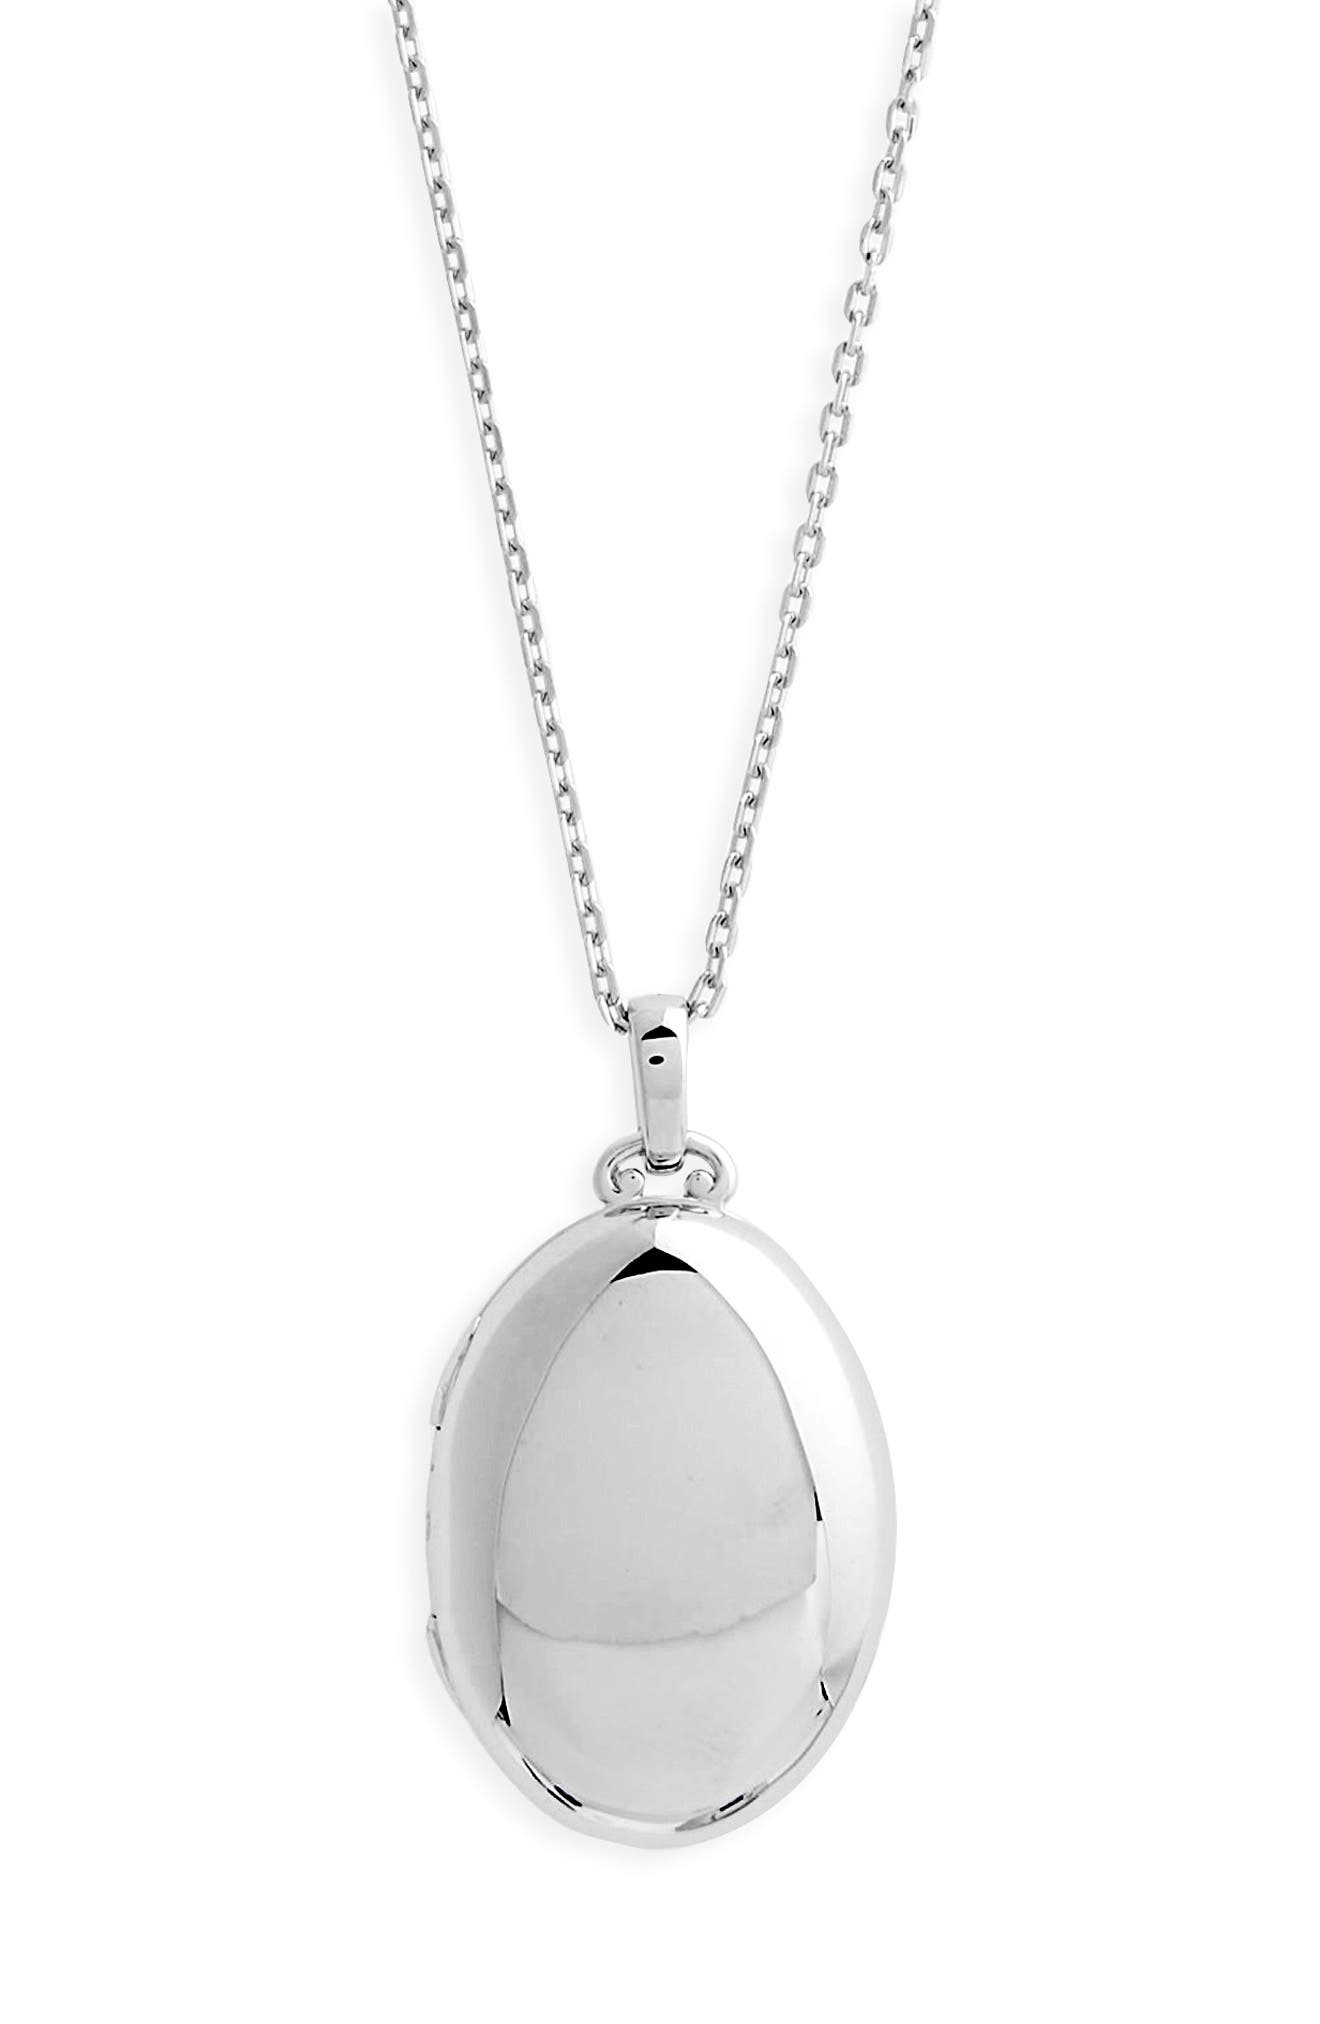 Four Image Mini Locket Necklace,                             Main thumbnail 1, color,                             STERLING SILVER